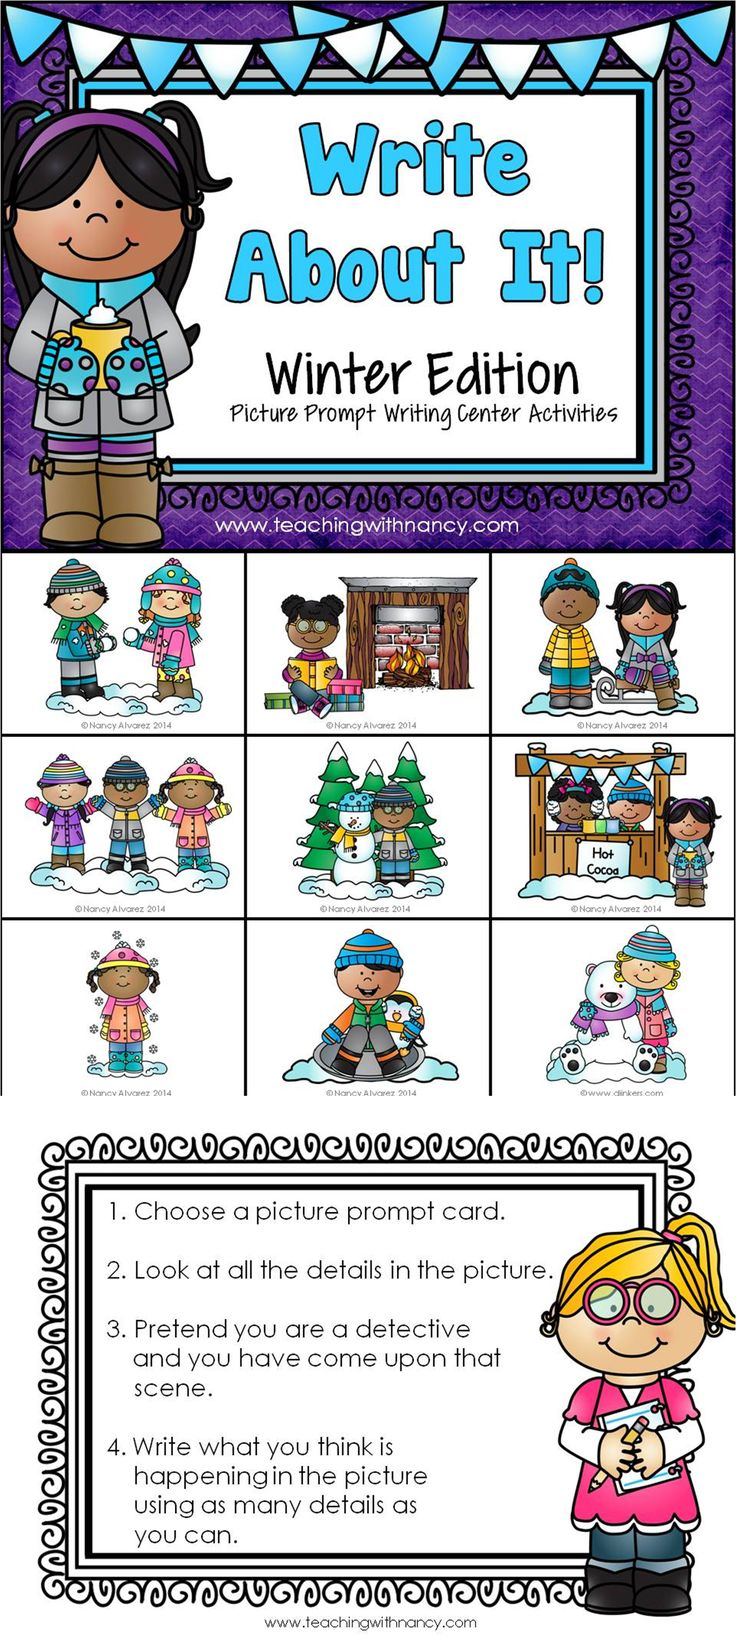 ***  FREE DOWNLOAD  *** Winter Writing Station perfect for writer's workshop or Daily 5.  These writing activities are ideal for Kindergarten to 2nd Grade and are perfect for LEP students.